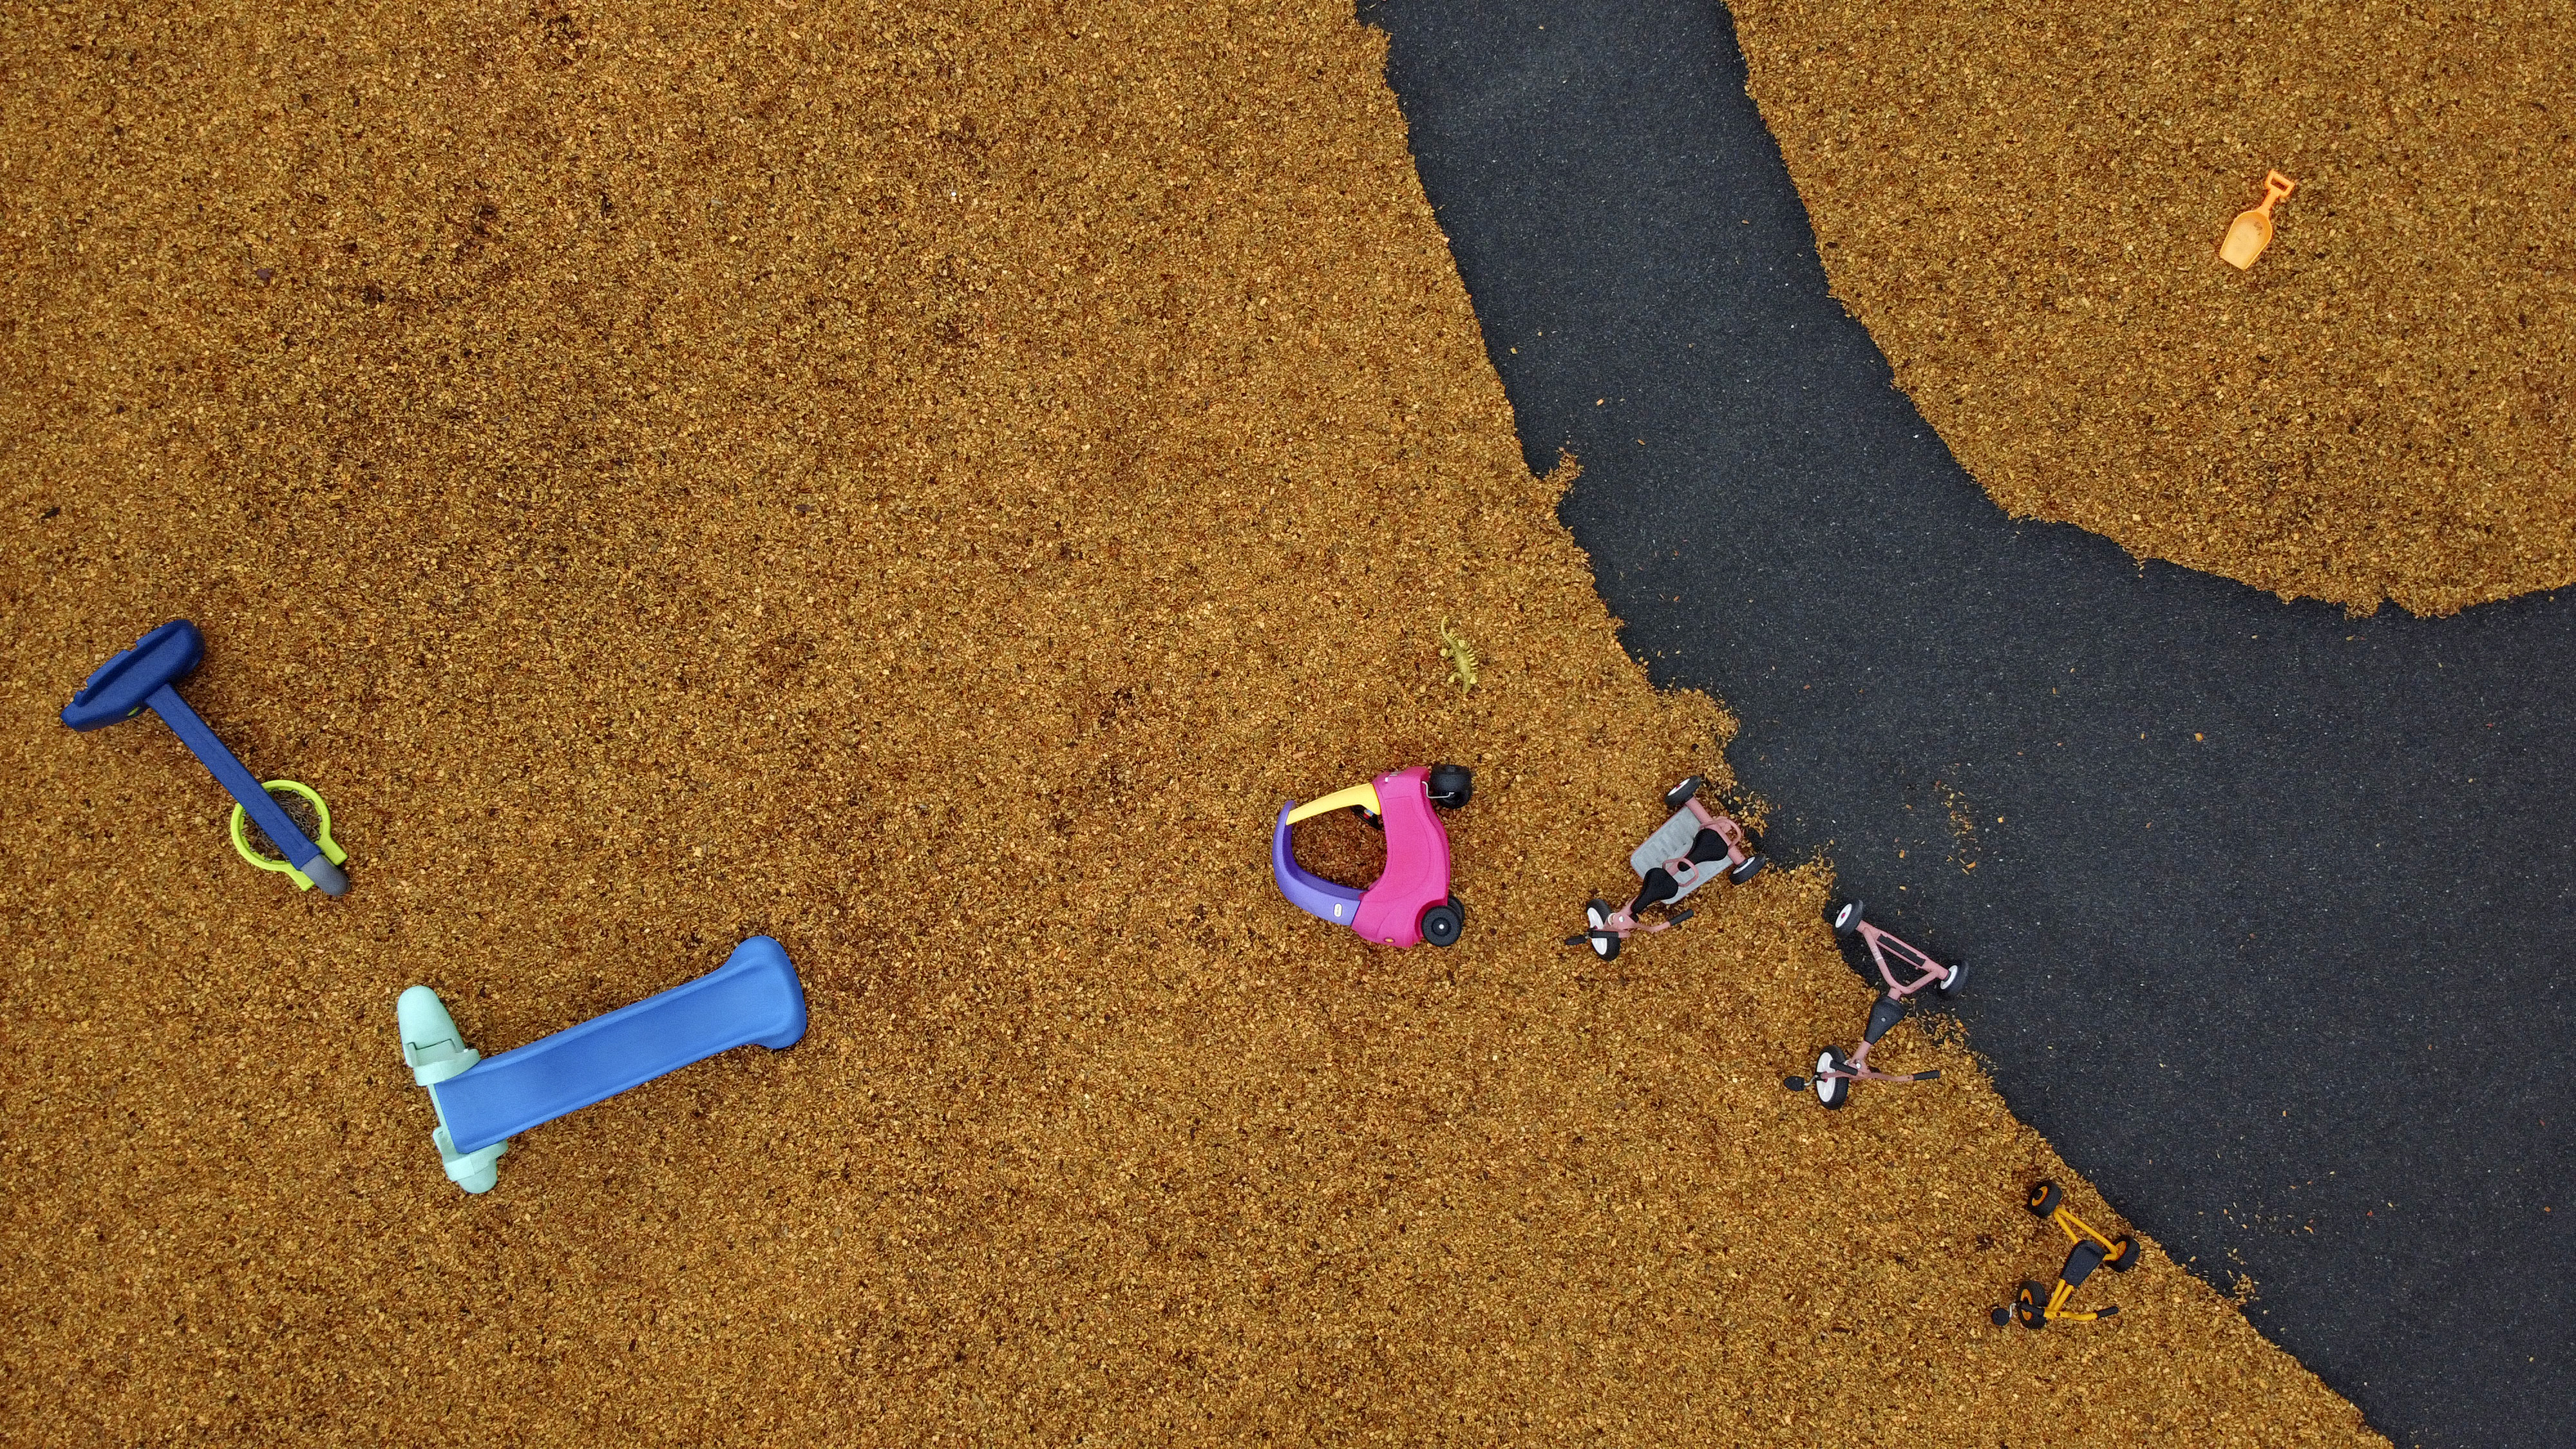 Toys lie scattered on an empty playground outside a school closed to stop the spread of coronavirus, Monday, March 30, 2020, in Attleboro, Mass. It's a scene playing out all over the world.